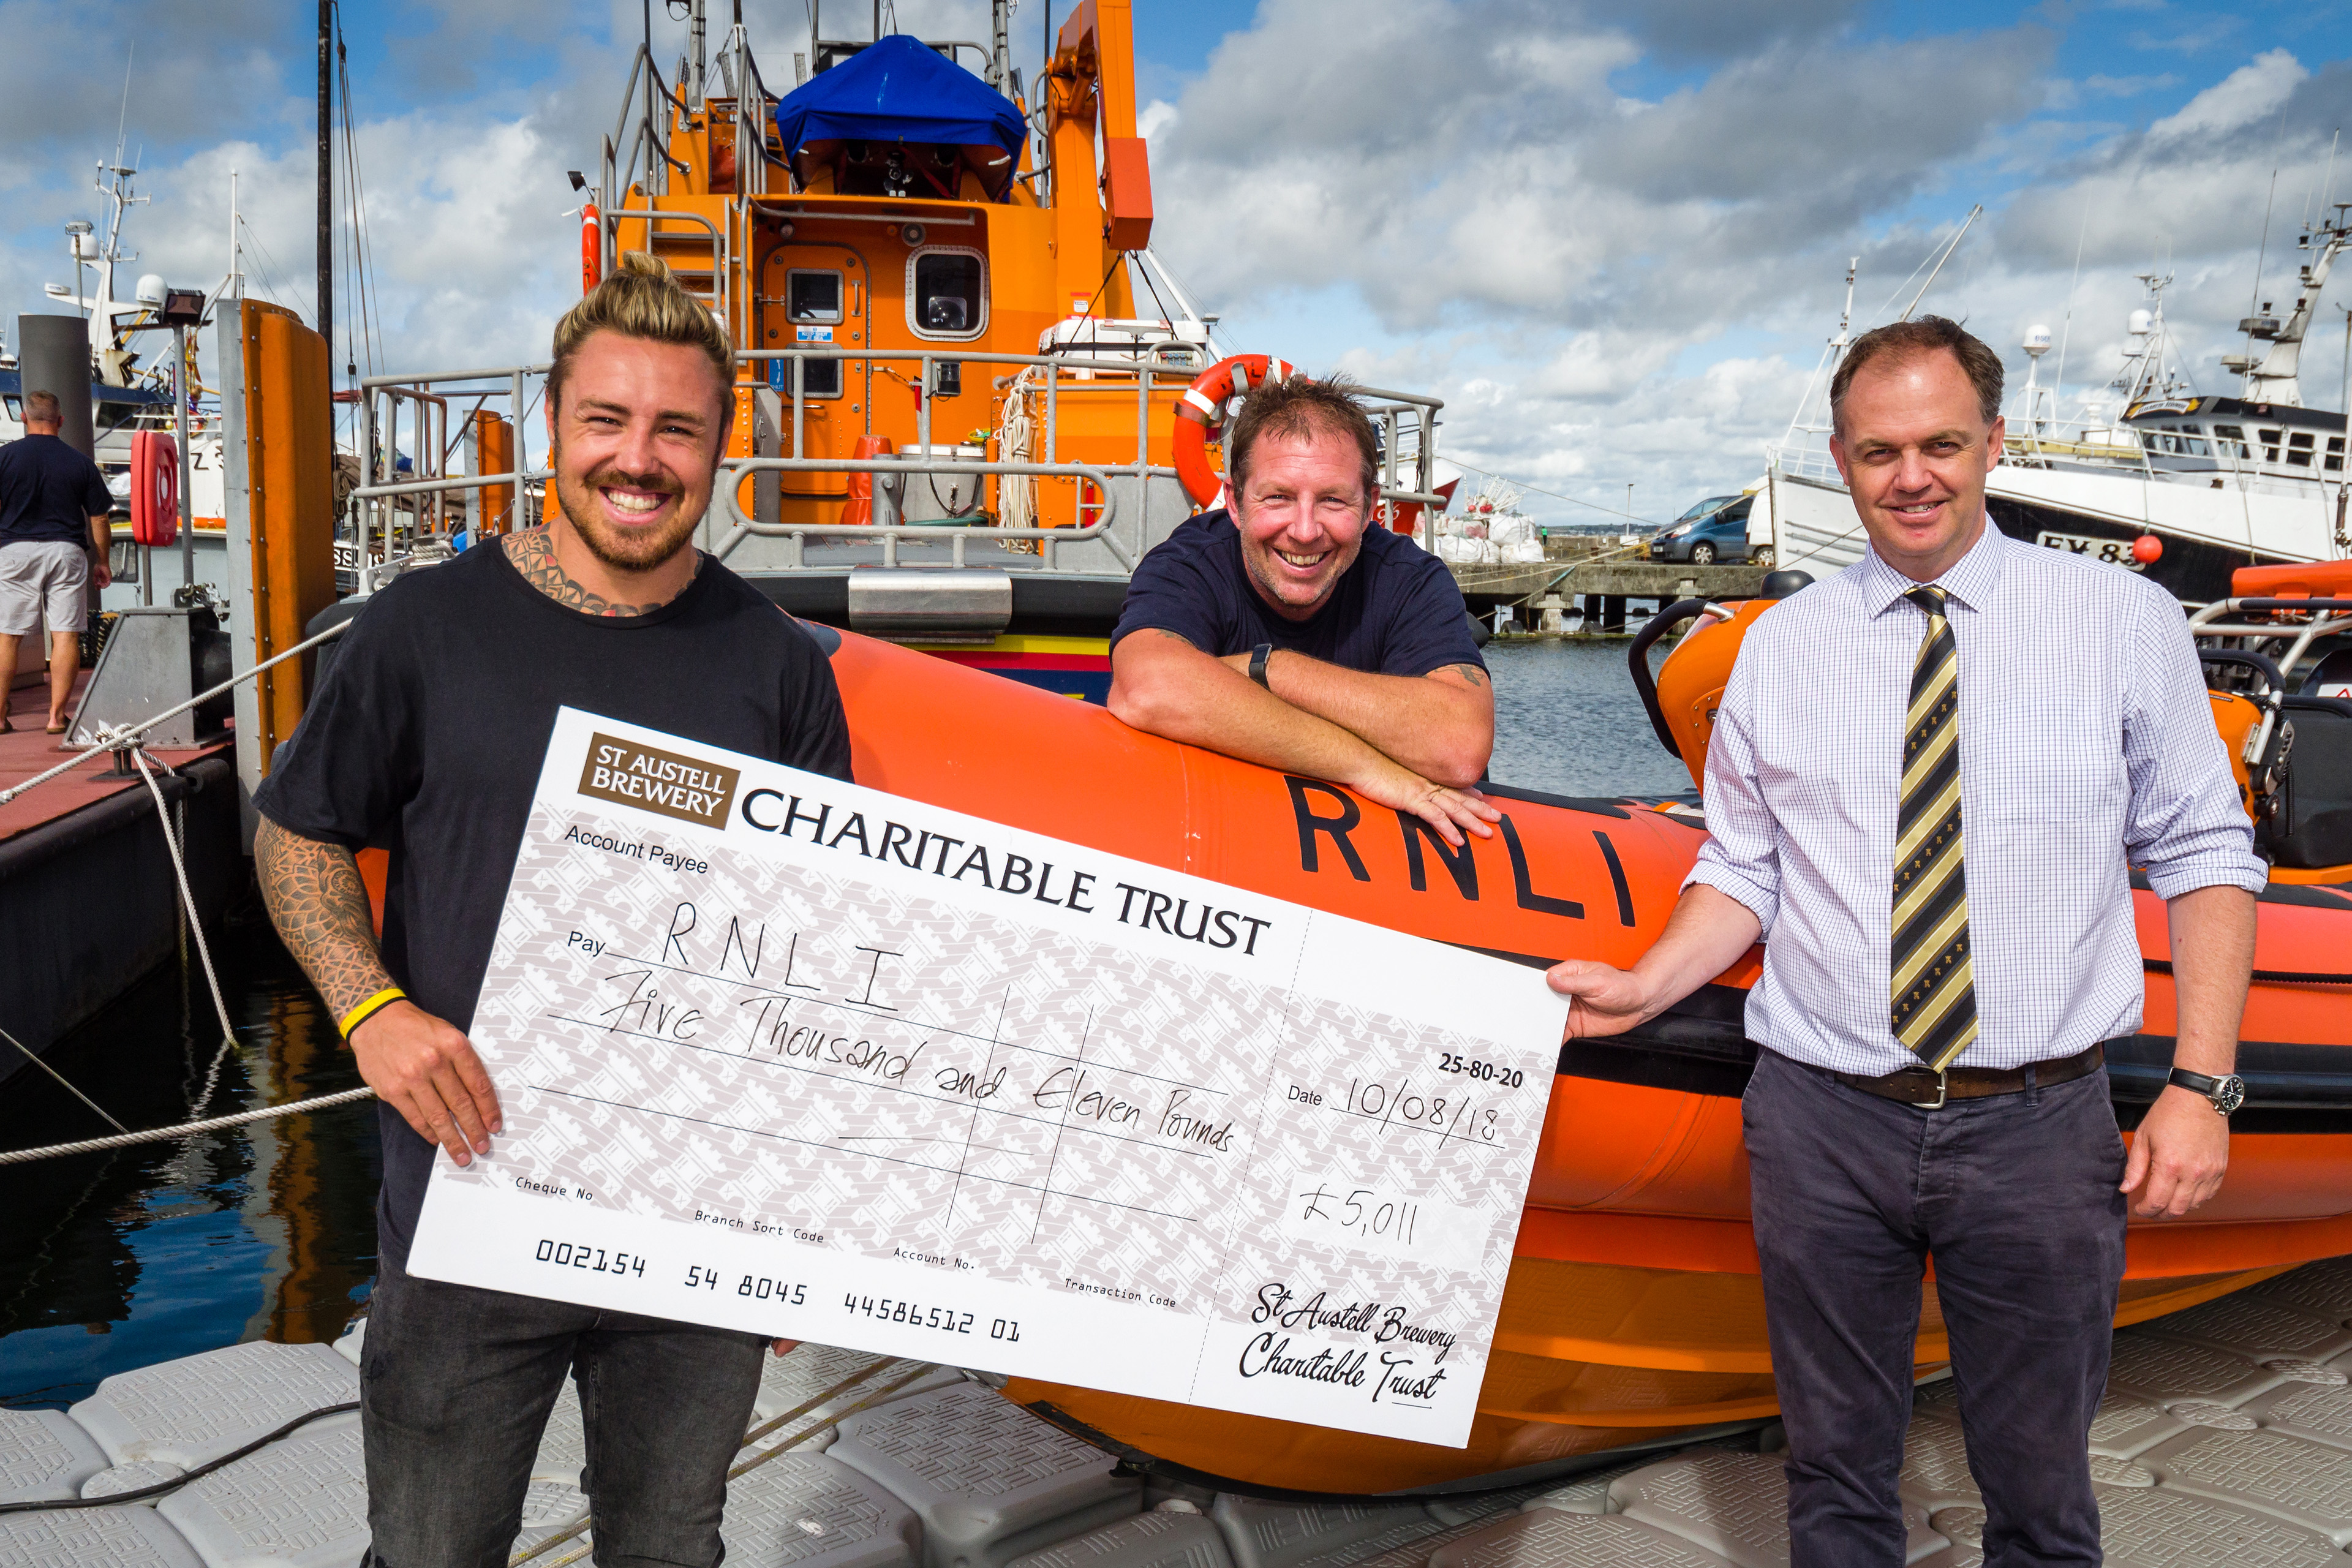 Cheque presentation at RNLI Penlee